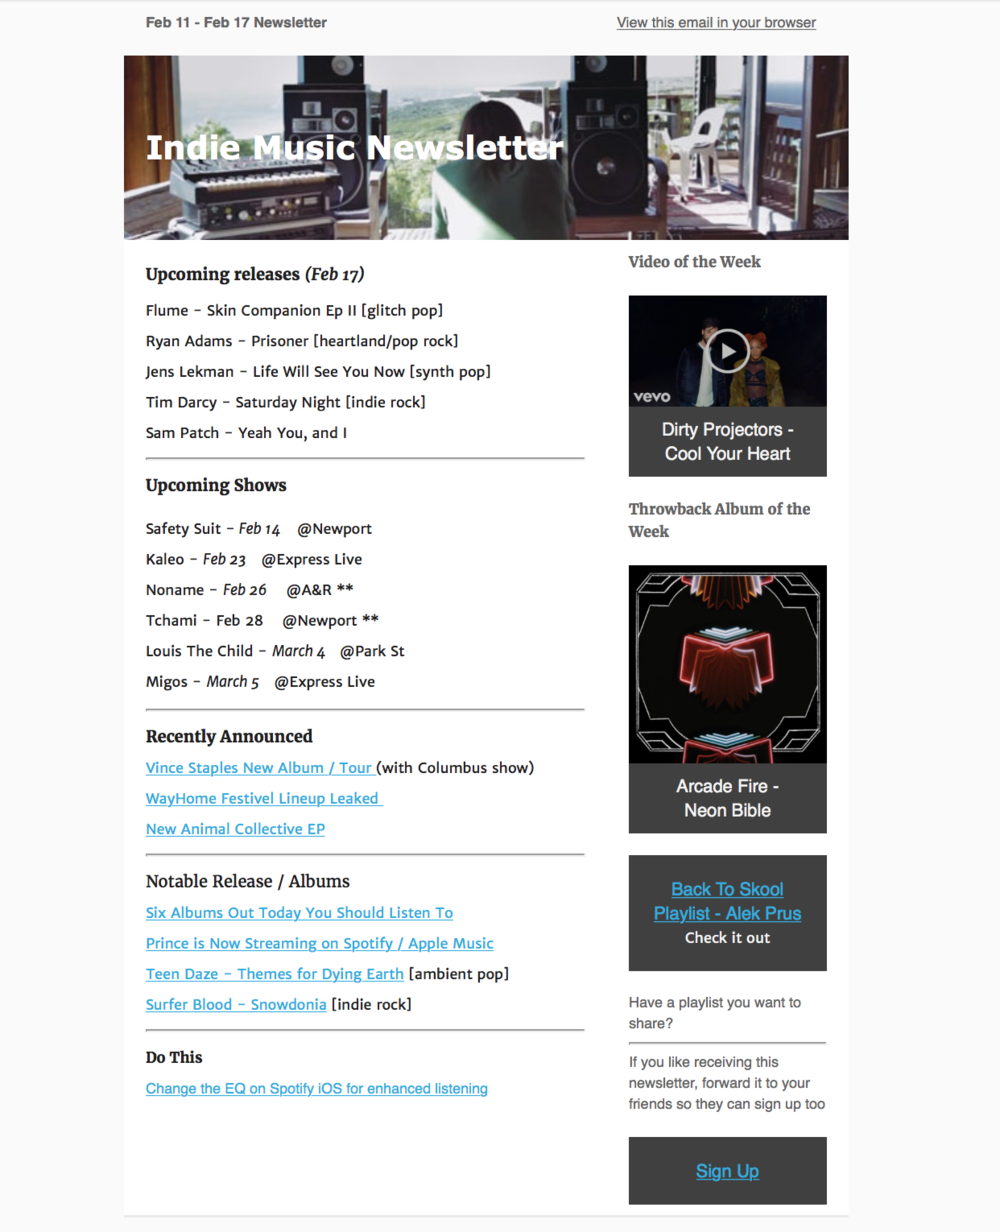 An example of the weekly newsletter